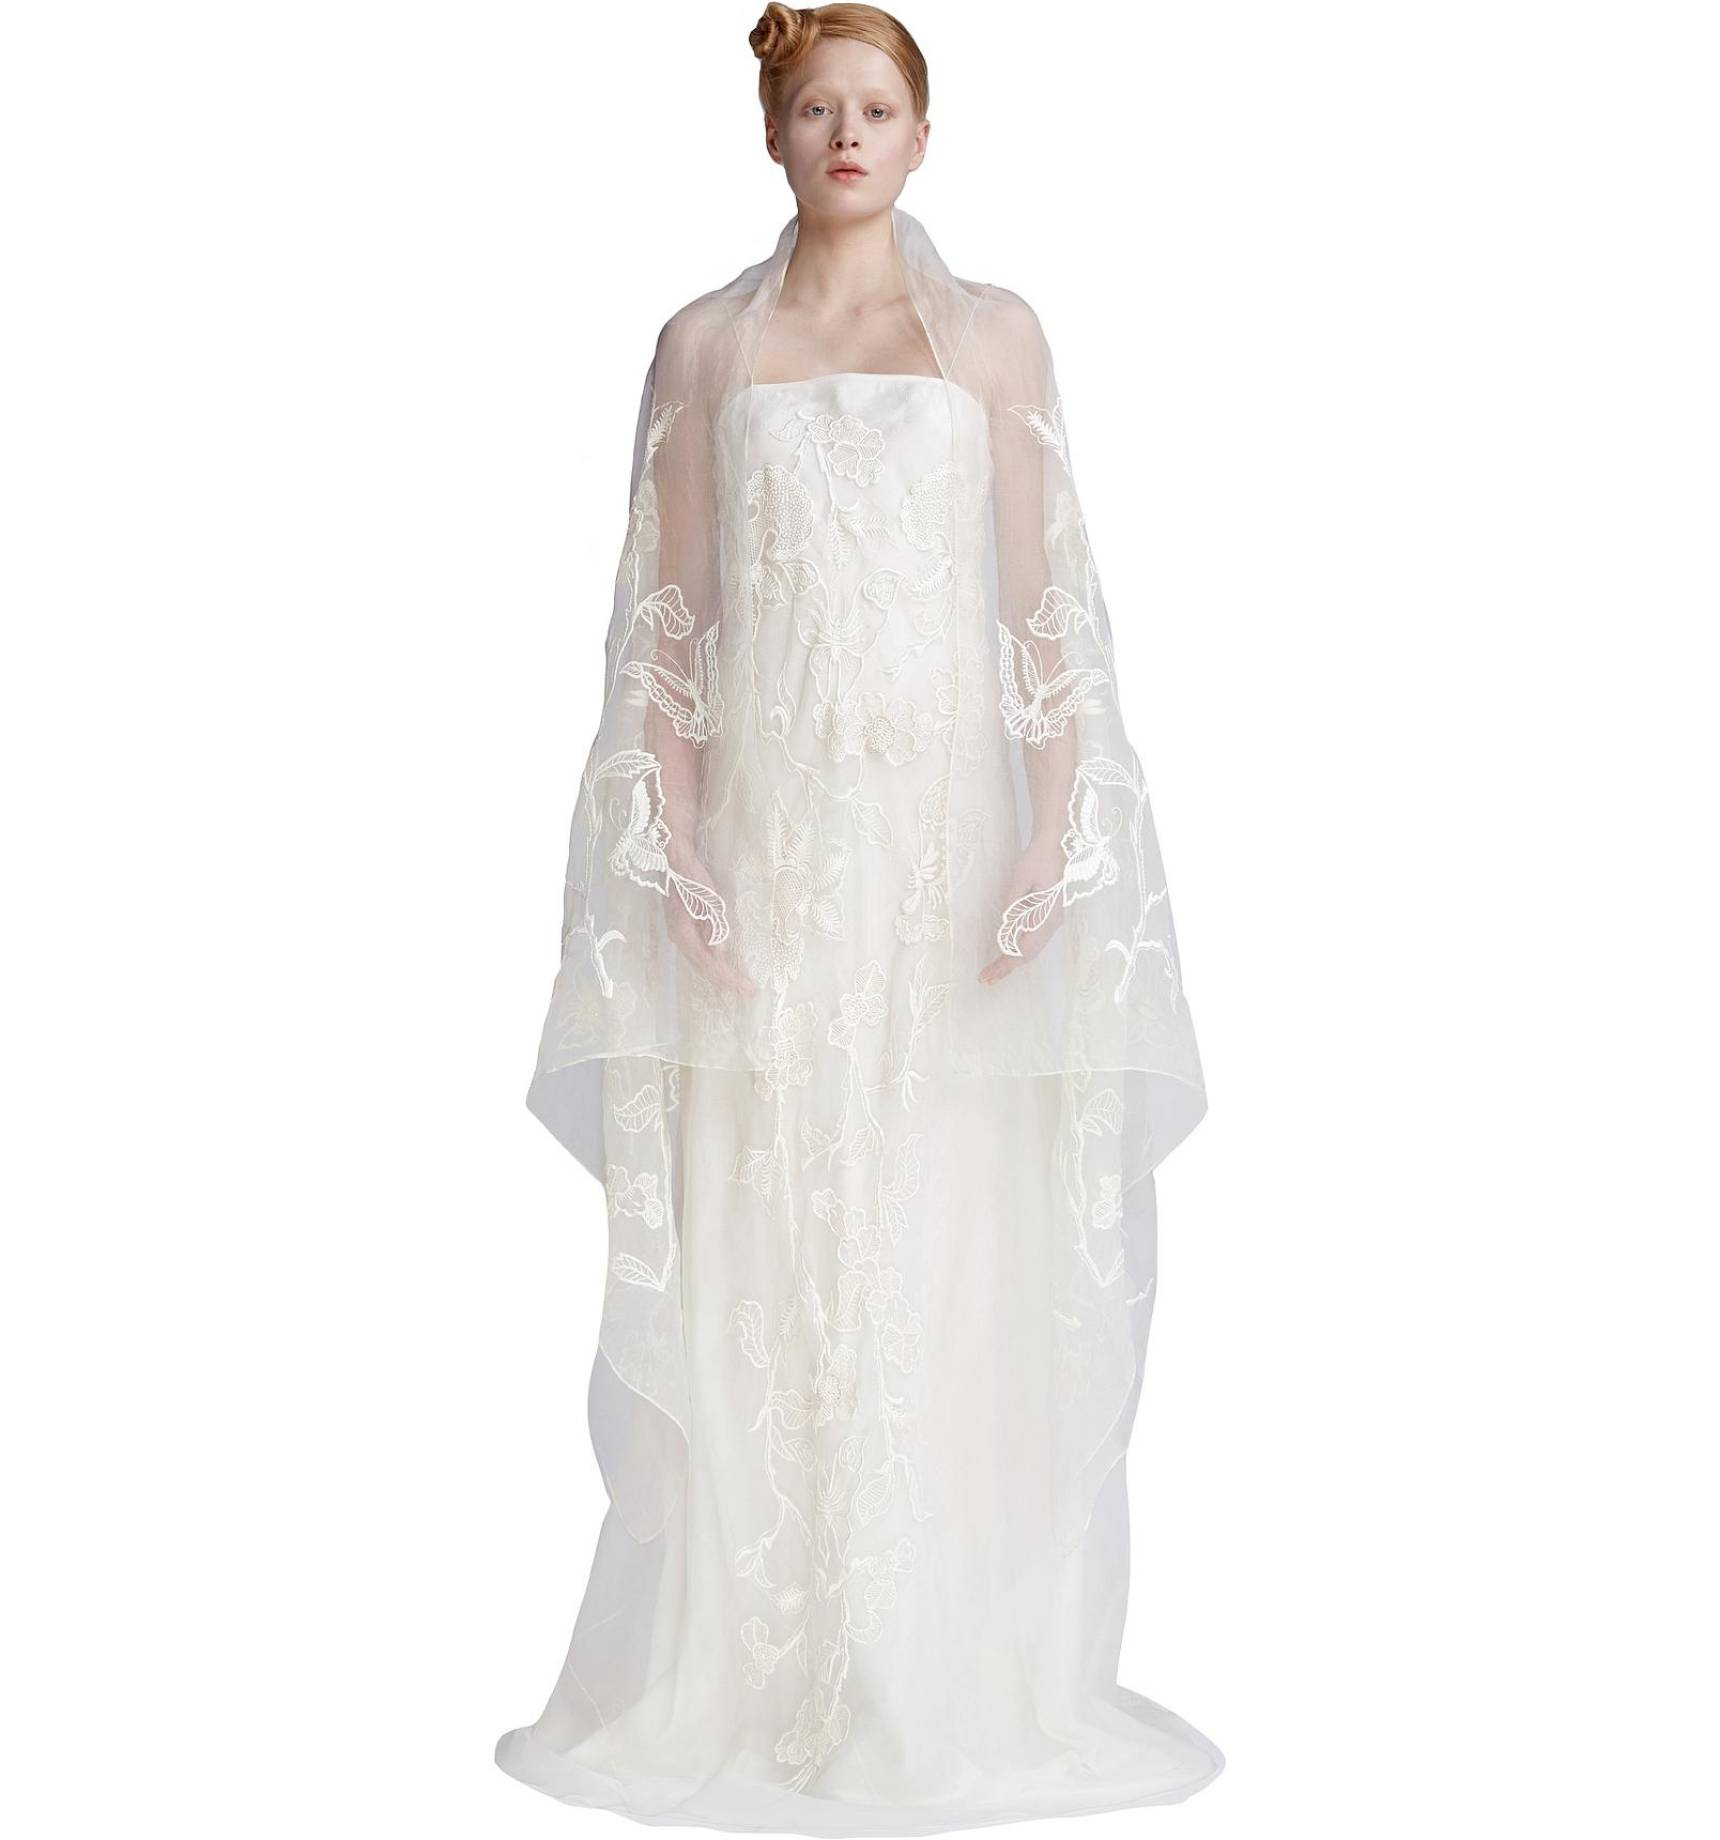 Wedding Gown Can Can: This Is Where You Can Shop For Wedding Dresses Online